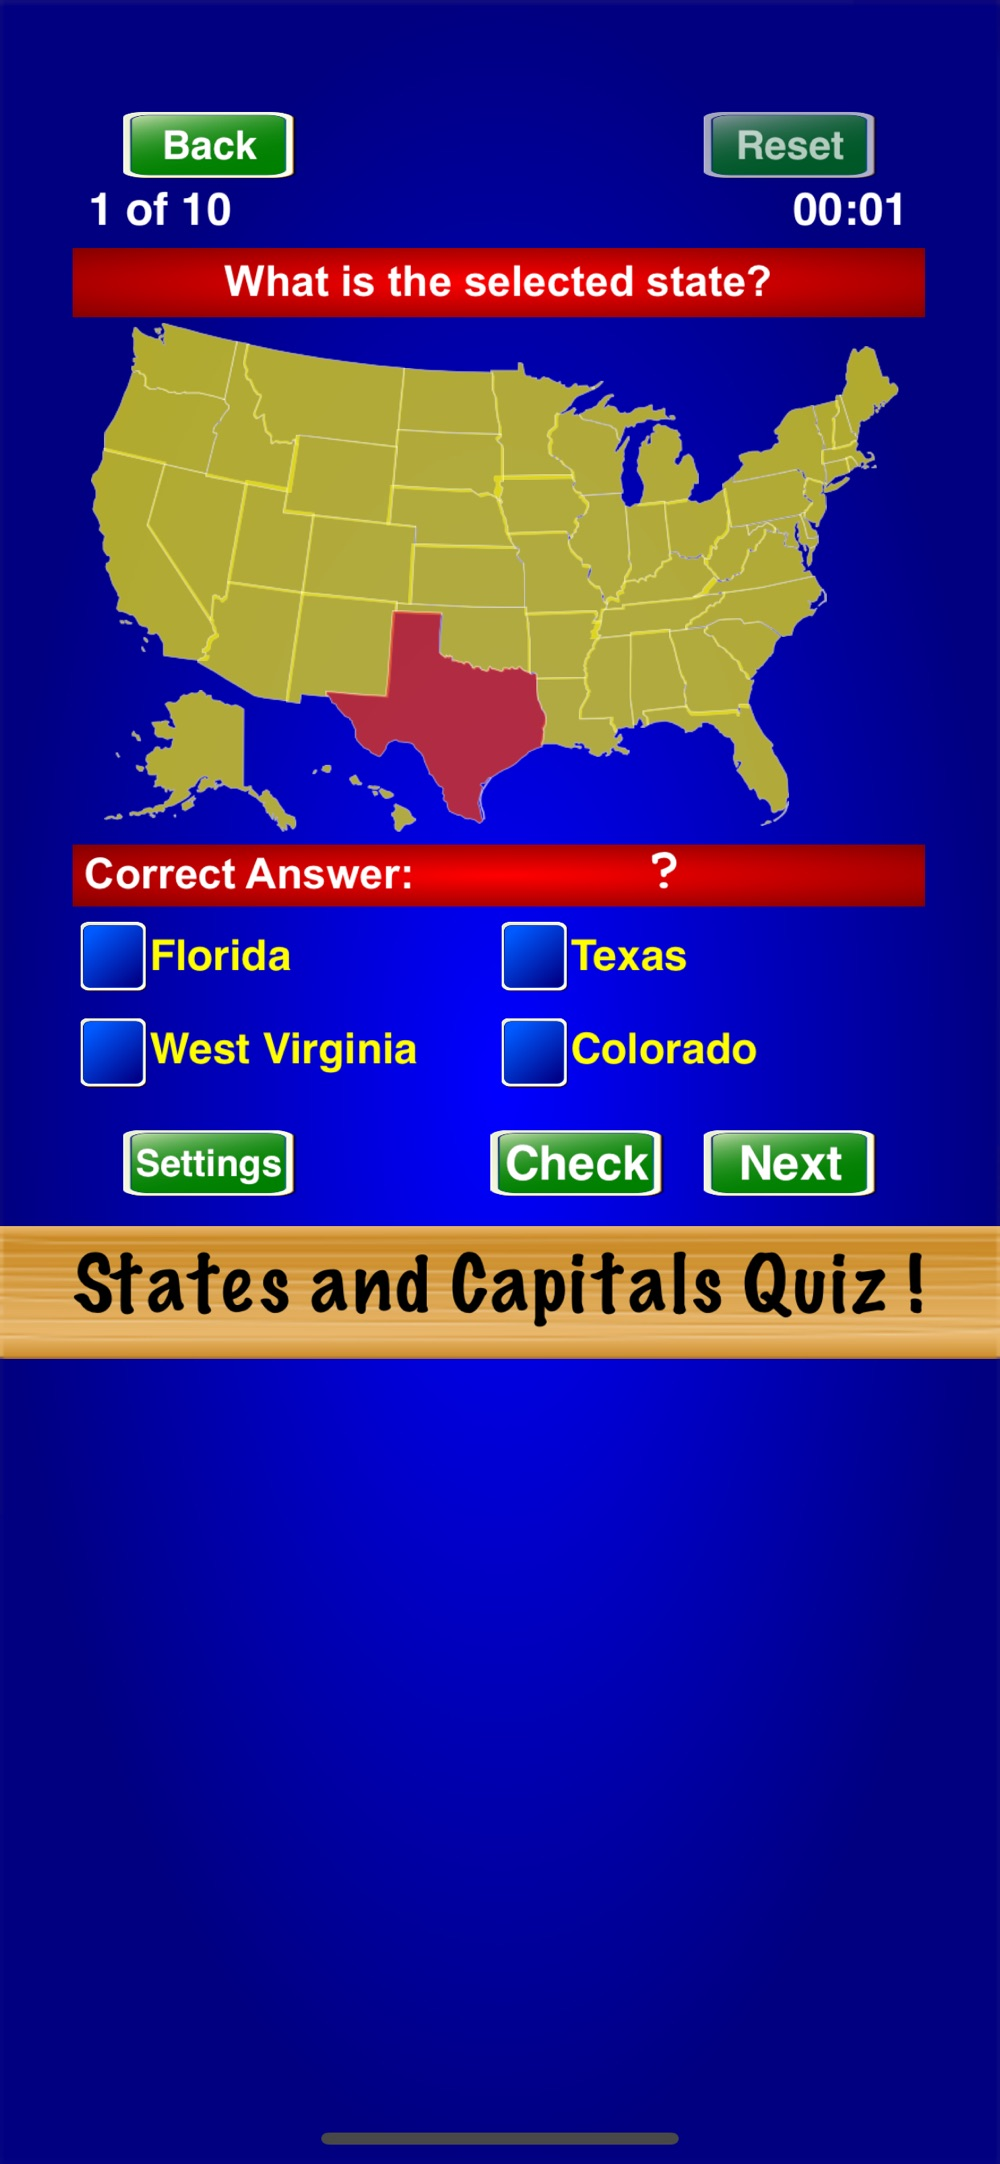 Hack tool for States and Capitals Quiz !